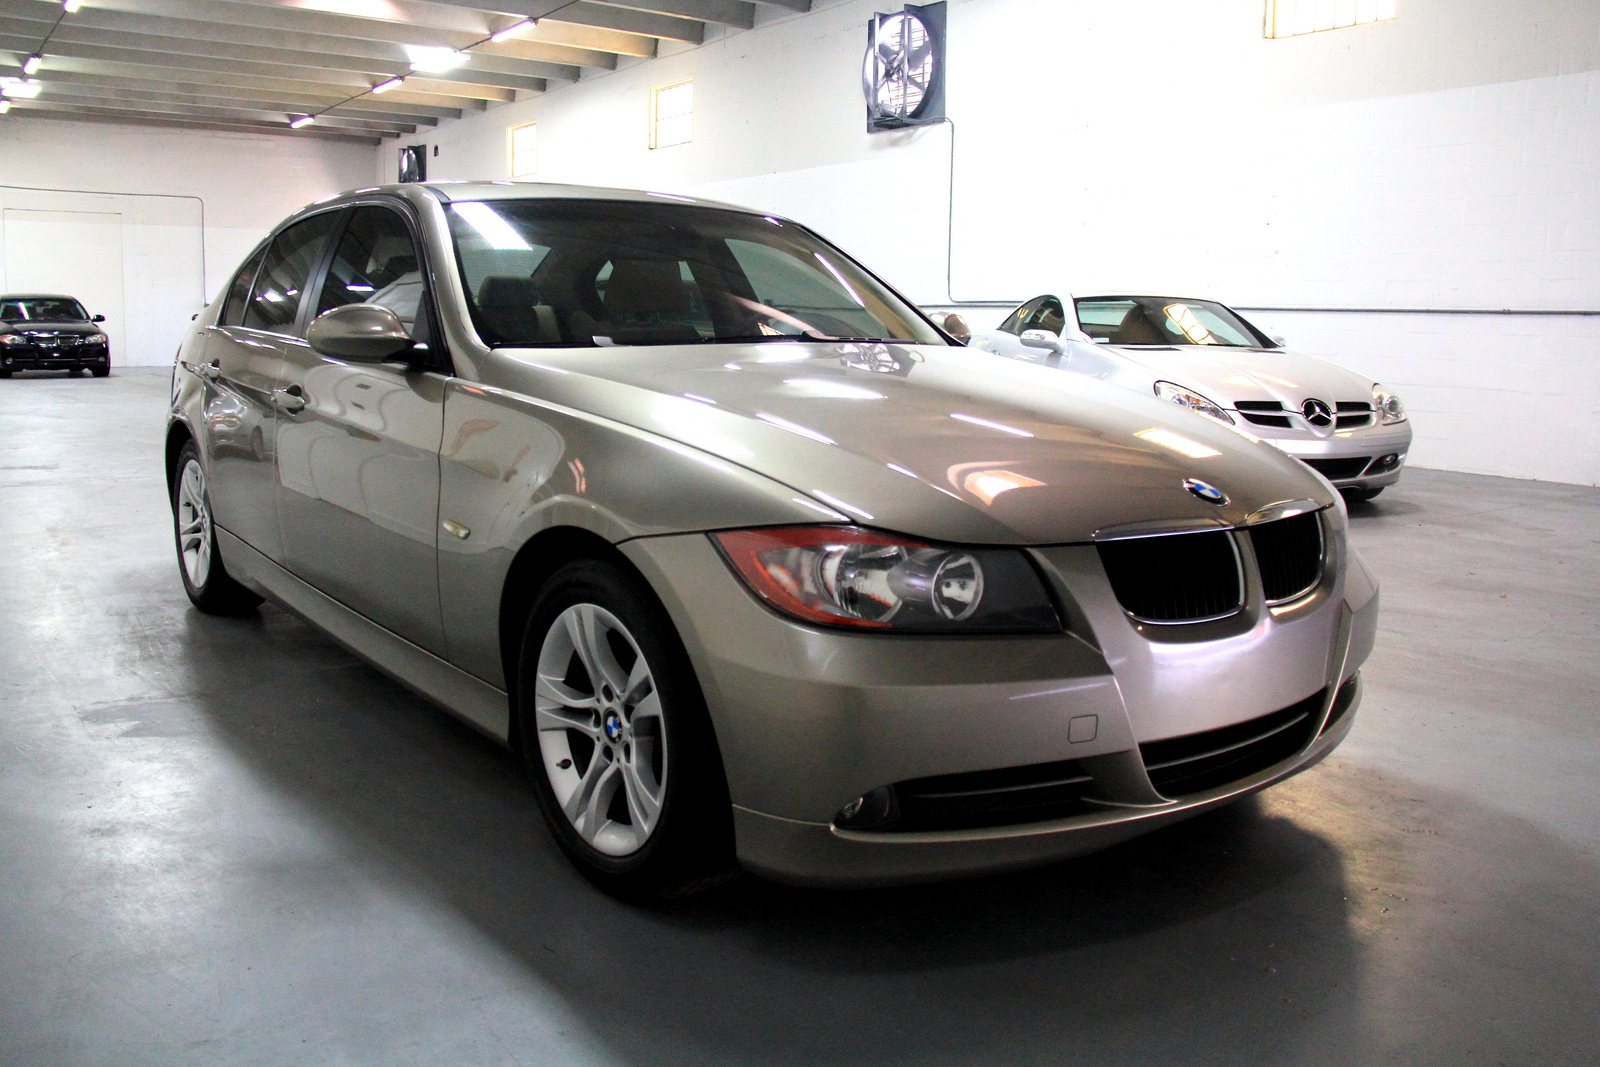 BMW 3 series 328xi 2008 photo - 11